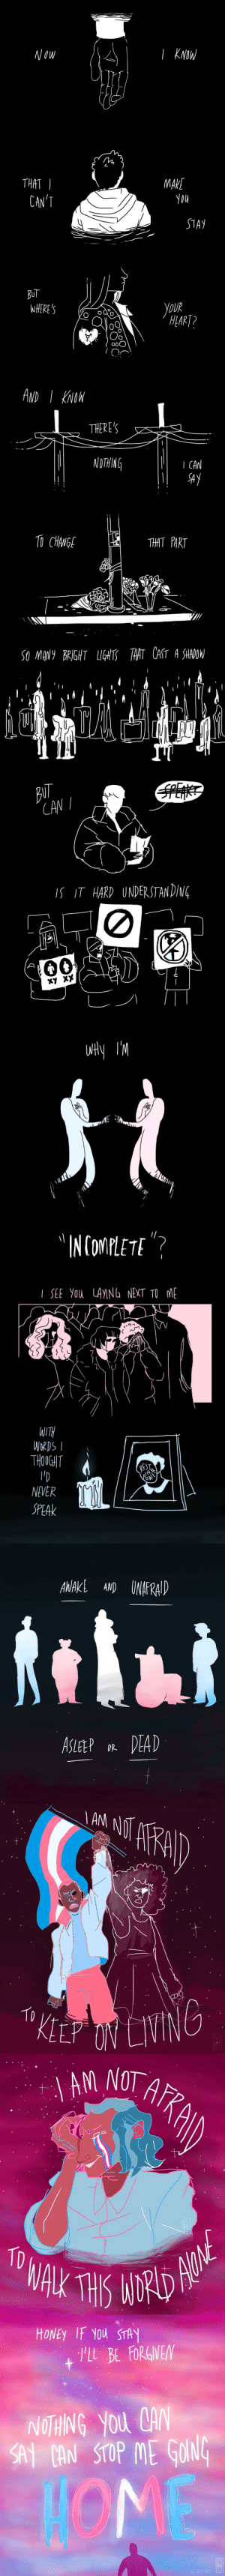 "hee-blee-art: (please click for better quality)  a comic for tdor featuring lyrics from ""famous last words"" by mcr. that song hits different today. this trans day of remembrance, remember not only those we have lost, but our trans brothers, sisters and siblings that are here with us, struggling along side us. we are each other's family; we are each other's home. honor the dead. fight for the living. stay safe. : Now  THAT  MAKE  you  CAN'T  STAY  BOT  WHERE'S  Уoue  НАART?  AND I KNOW  THERES  NOTHING  I CAN  SAY   TO CHANGE  THAT PART  S0 MANY BRIGHT LIGHTSTHAT CAST A SHADOW  BUT  CAN I  SPENE  IS IT HARD UNDERSTAN DING  -   INCOMPLETE ""?  